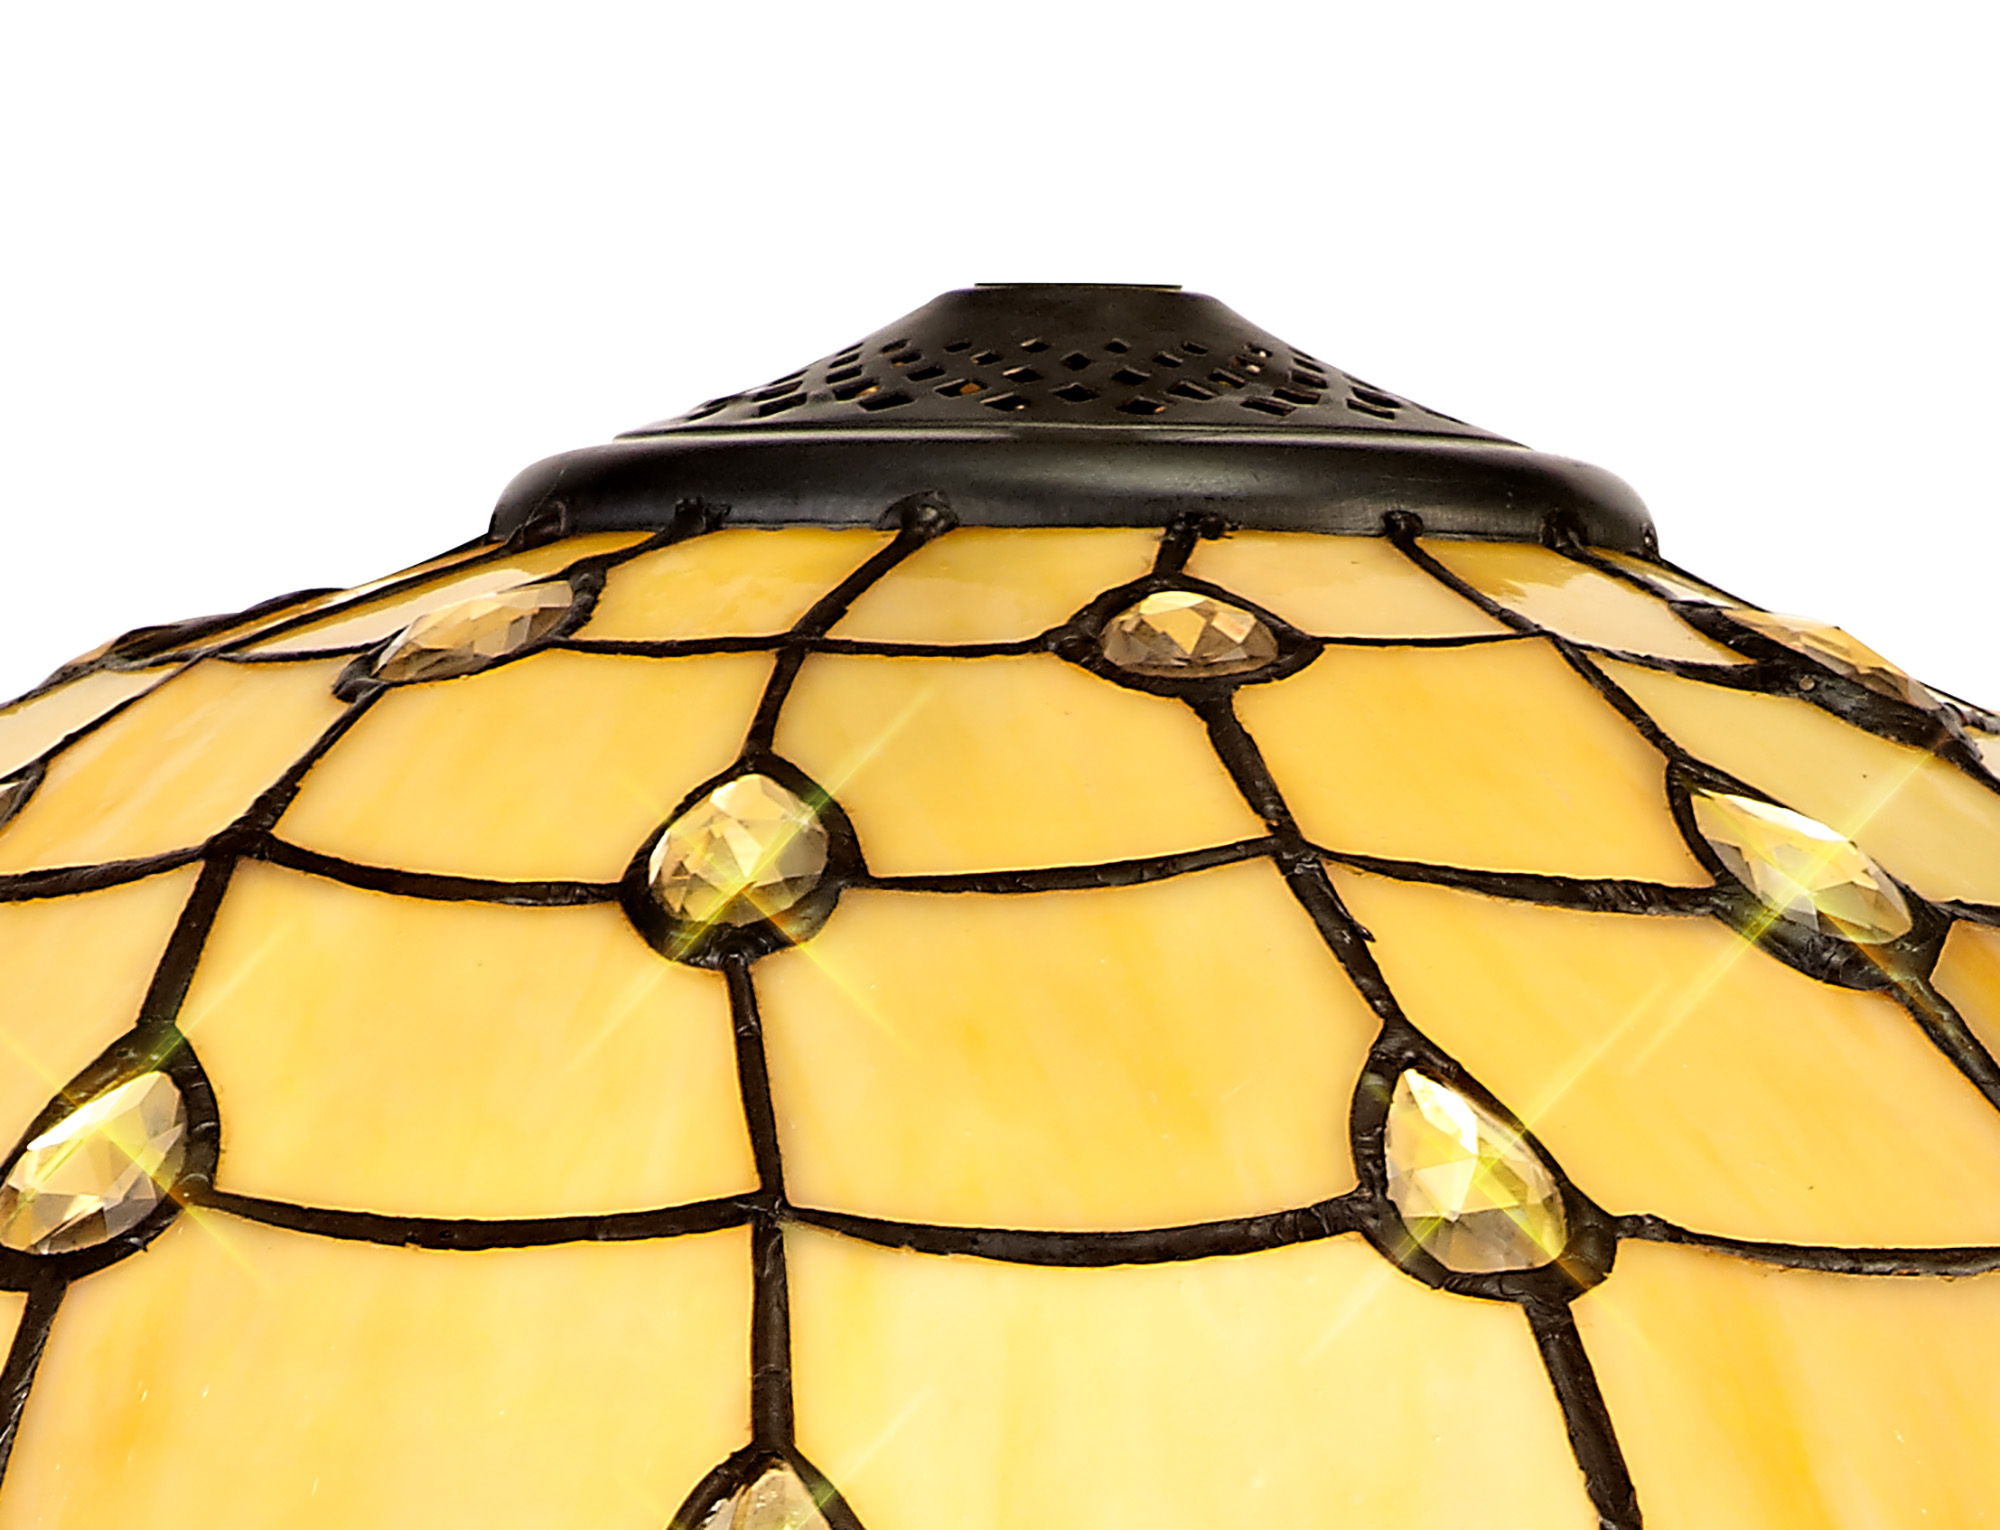 2 Light Octagonal Table Lamp E27 With 40cm Tiffany Shade, Beige/Clear Crystal/Aged Antique Brass